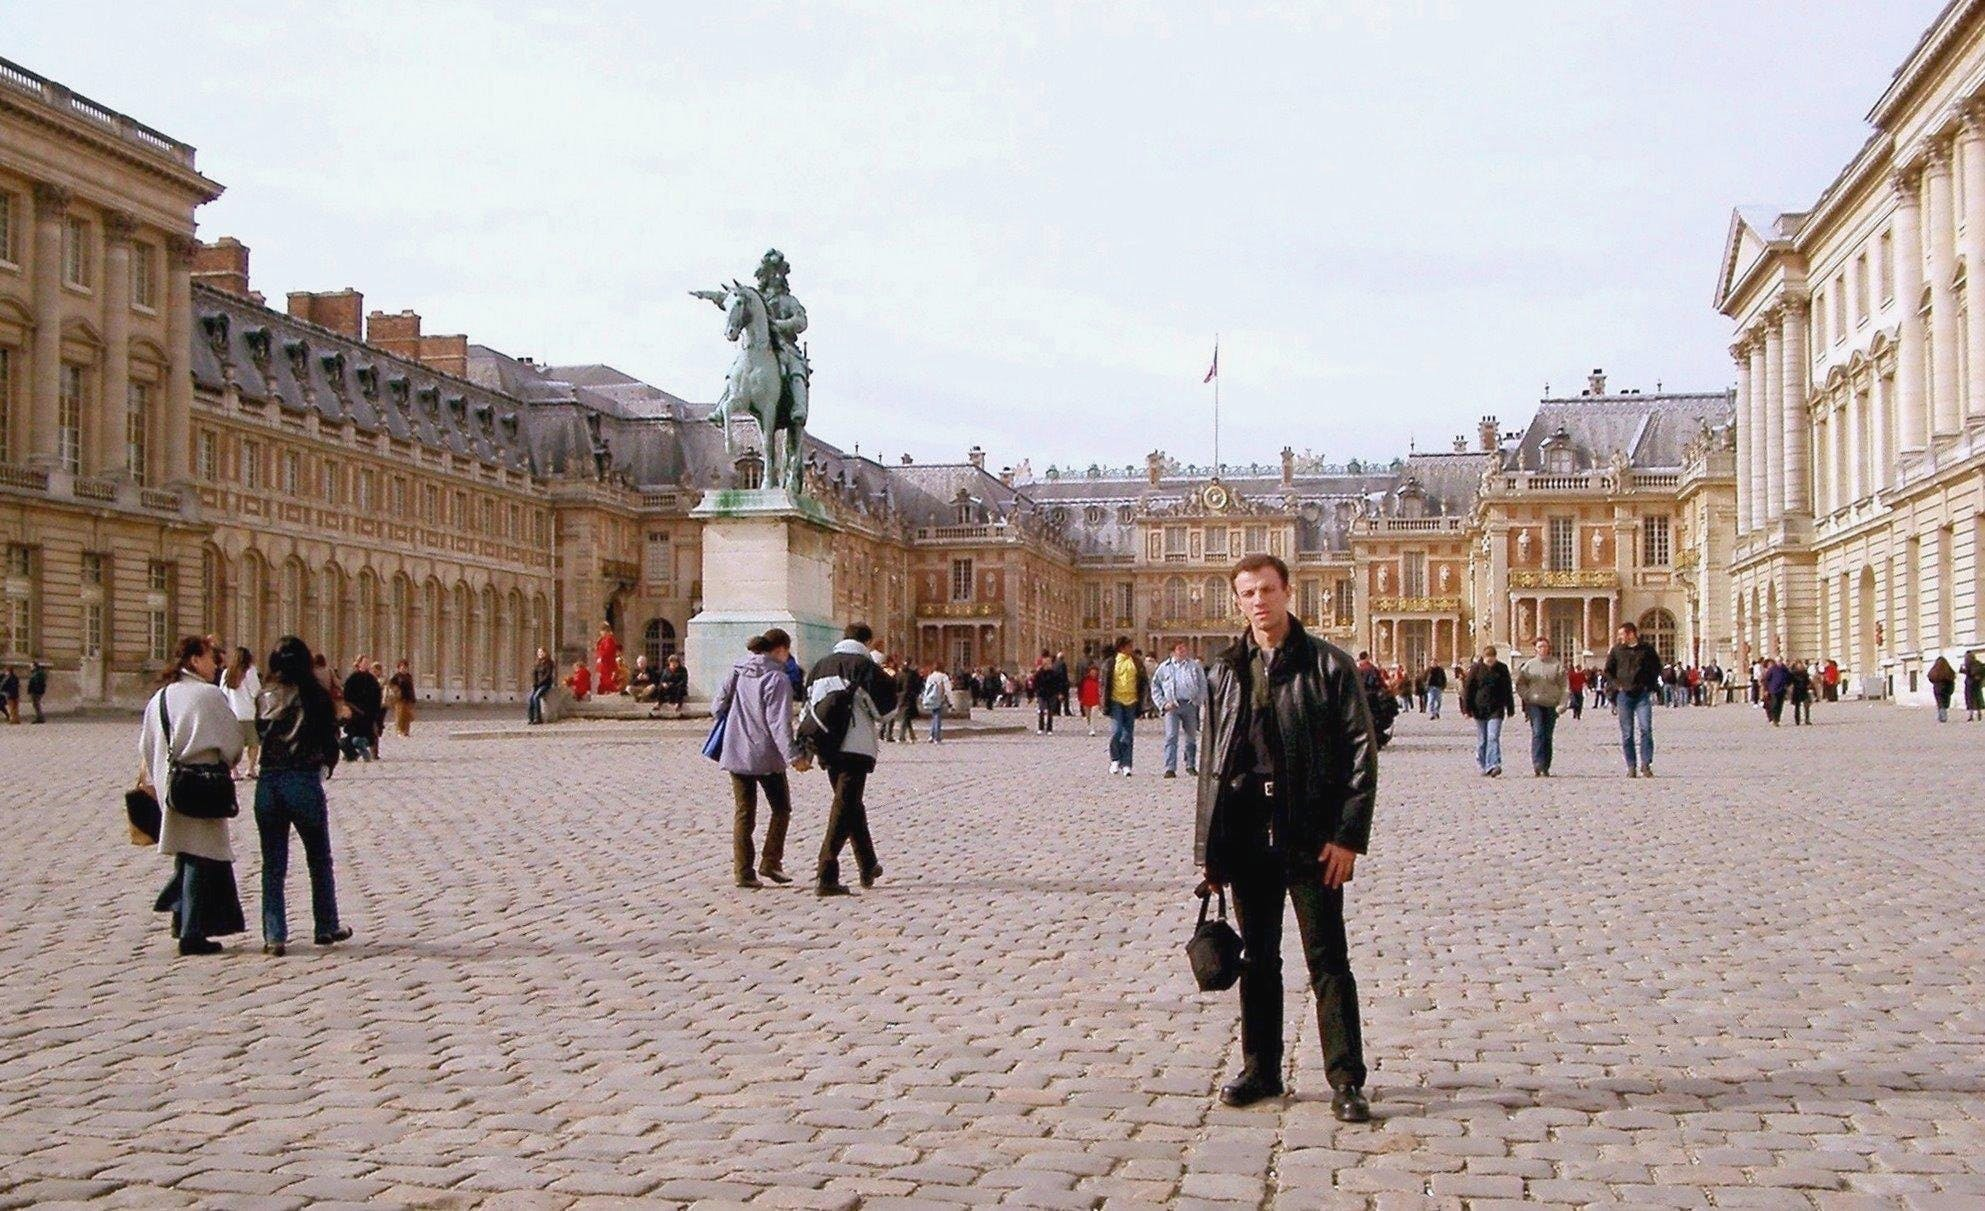 Free stock photo of france, Versailles, palace of versailles, Château de Versailles